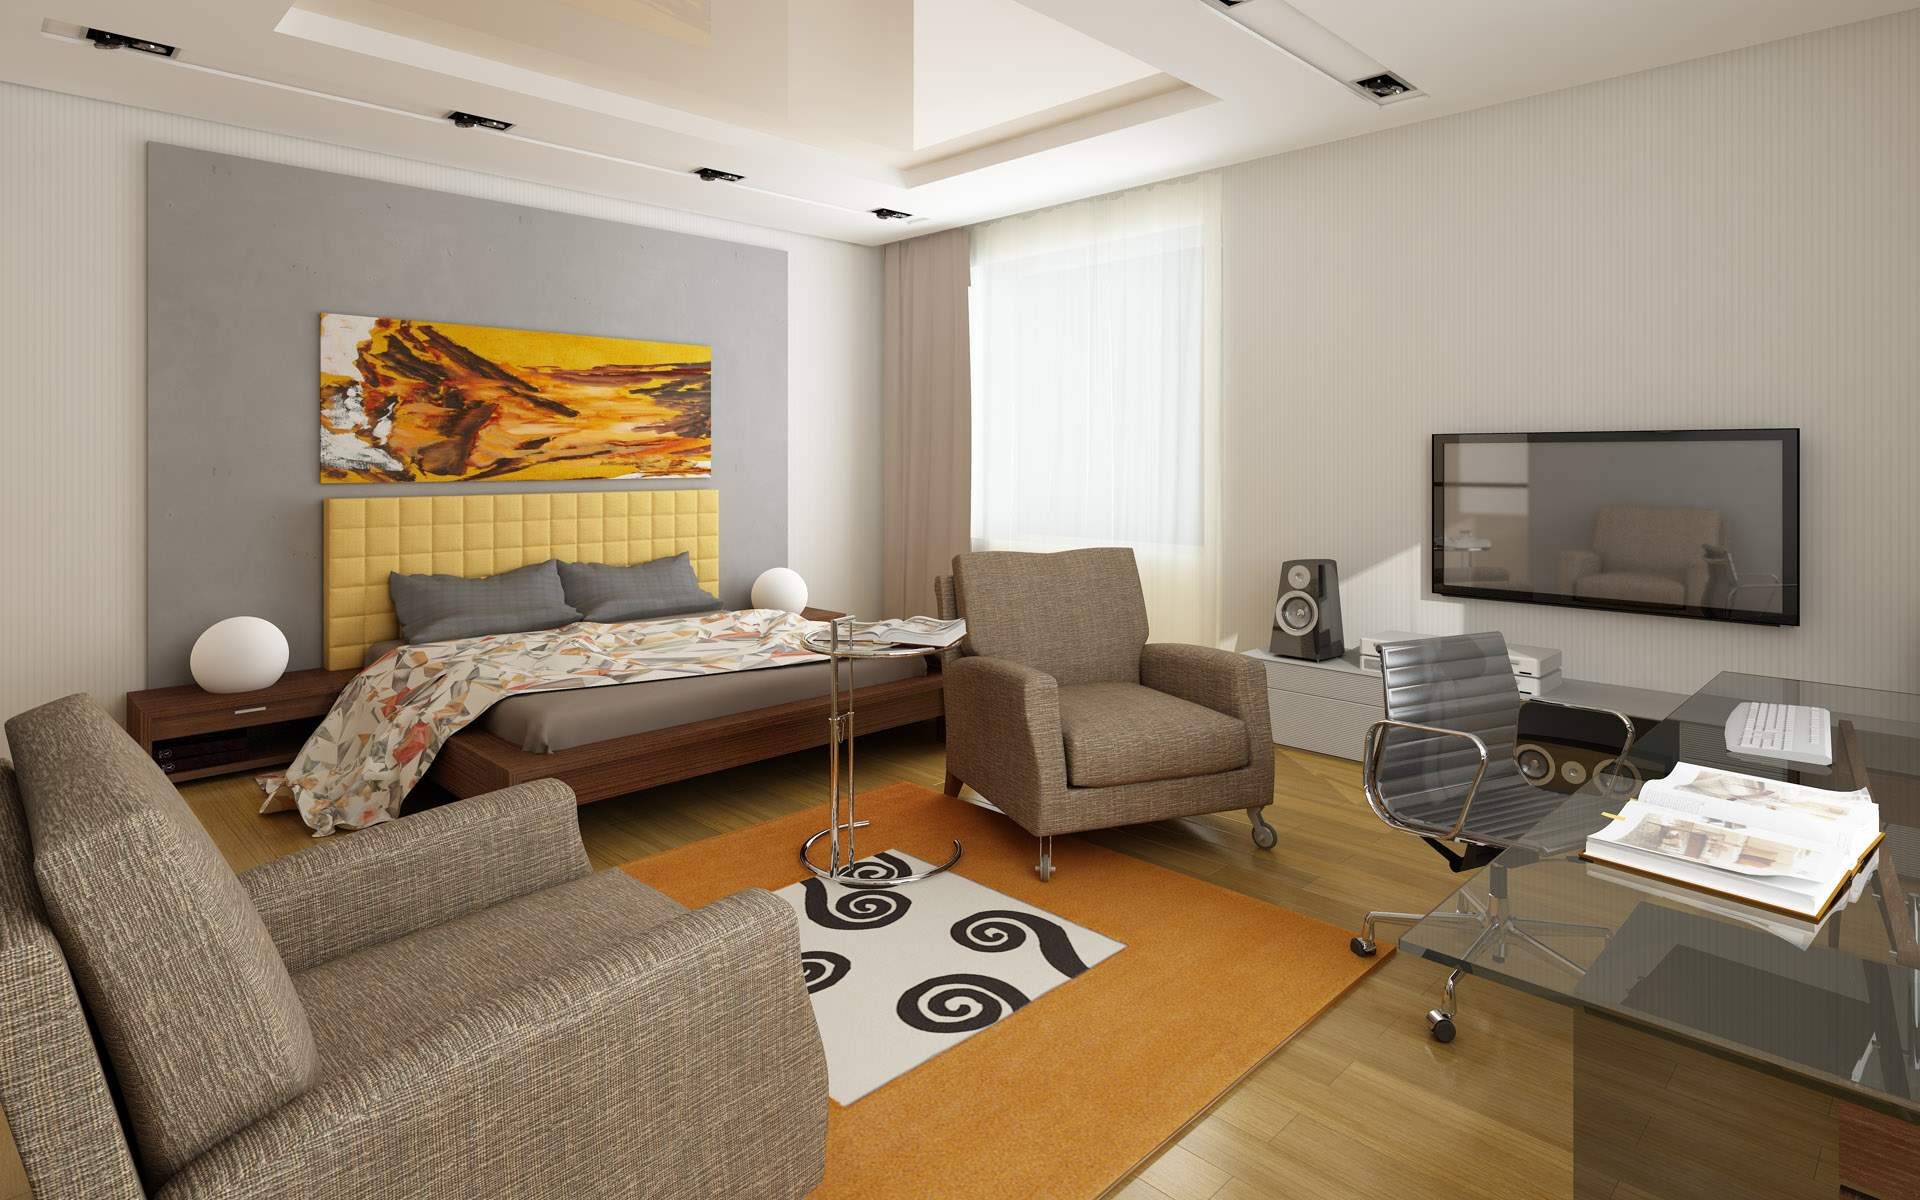 50 Best Interior Design For Your Home